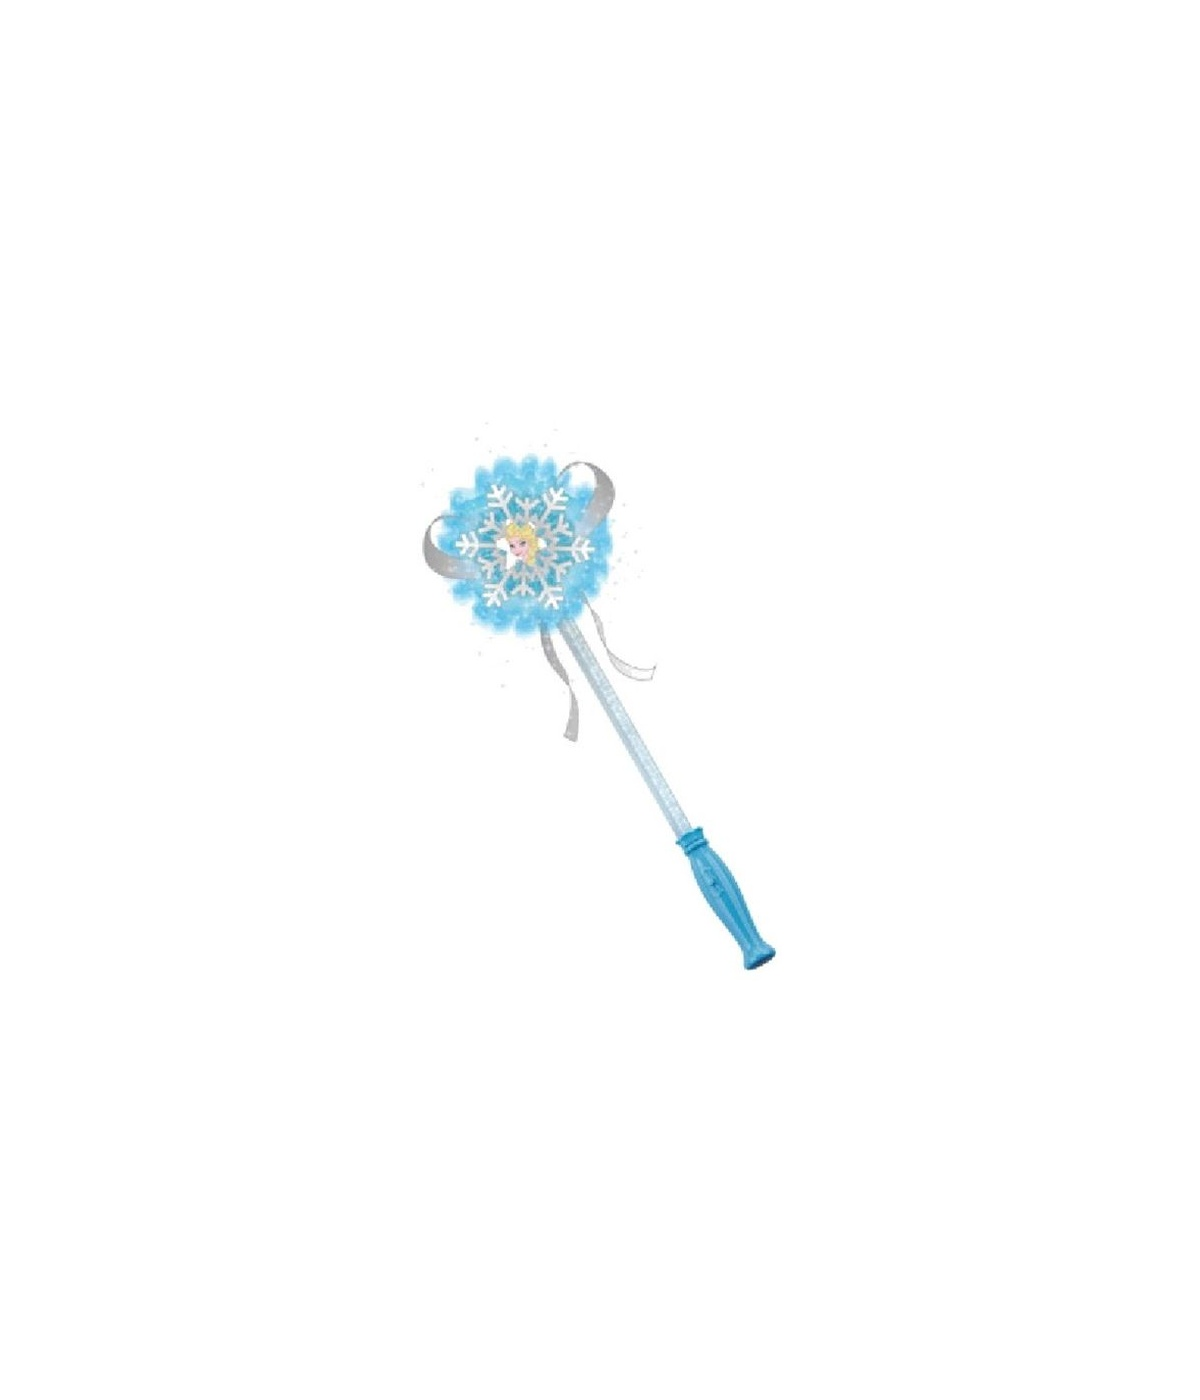 sc 1 st  Wonder Costumes & Frozen Elsa Light and Sound Wand - Costume Accessories